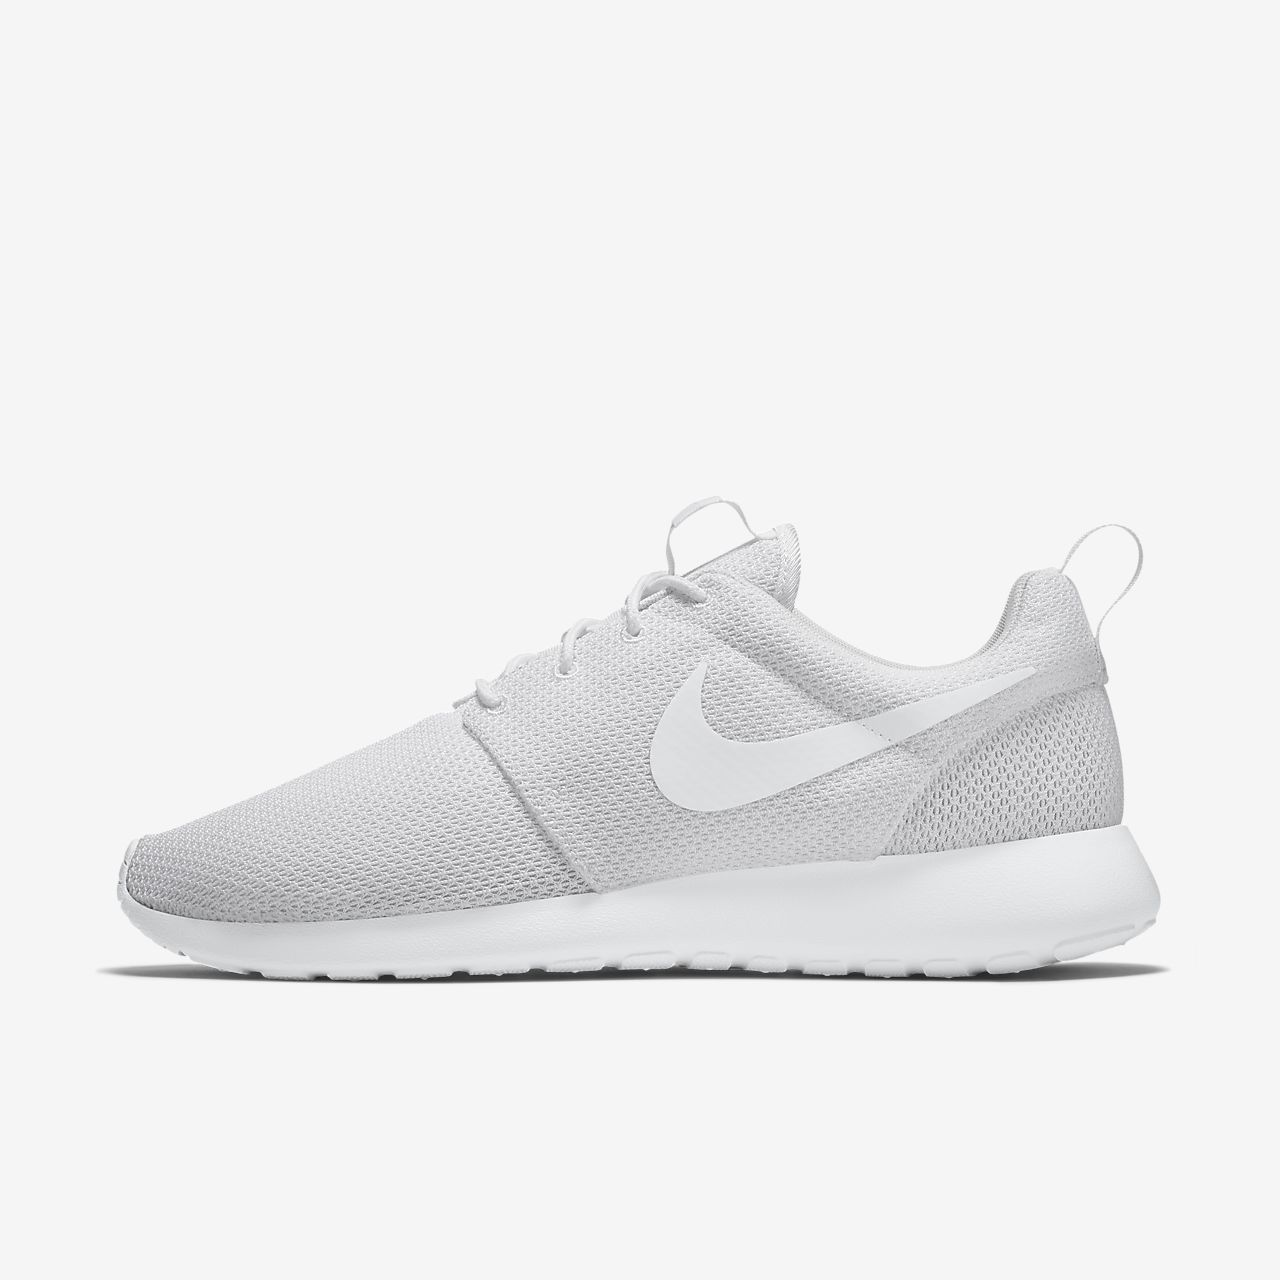 5ecb3c4a1f3c7 Nike Roshe One Men s Shoe. Nike.com